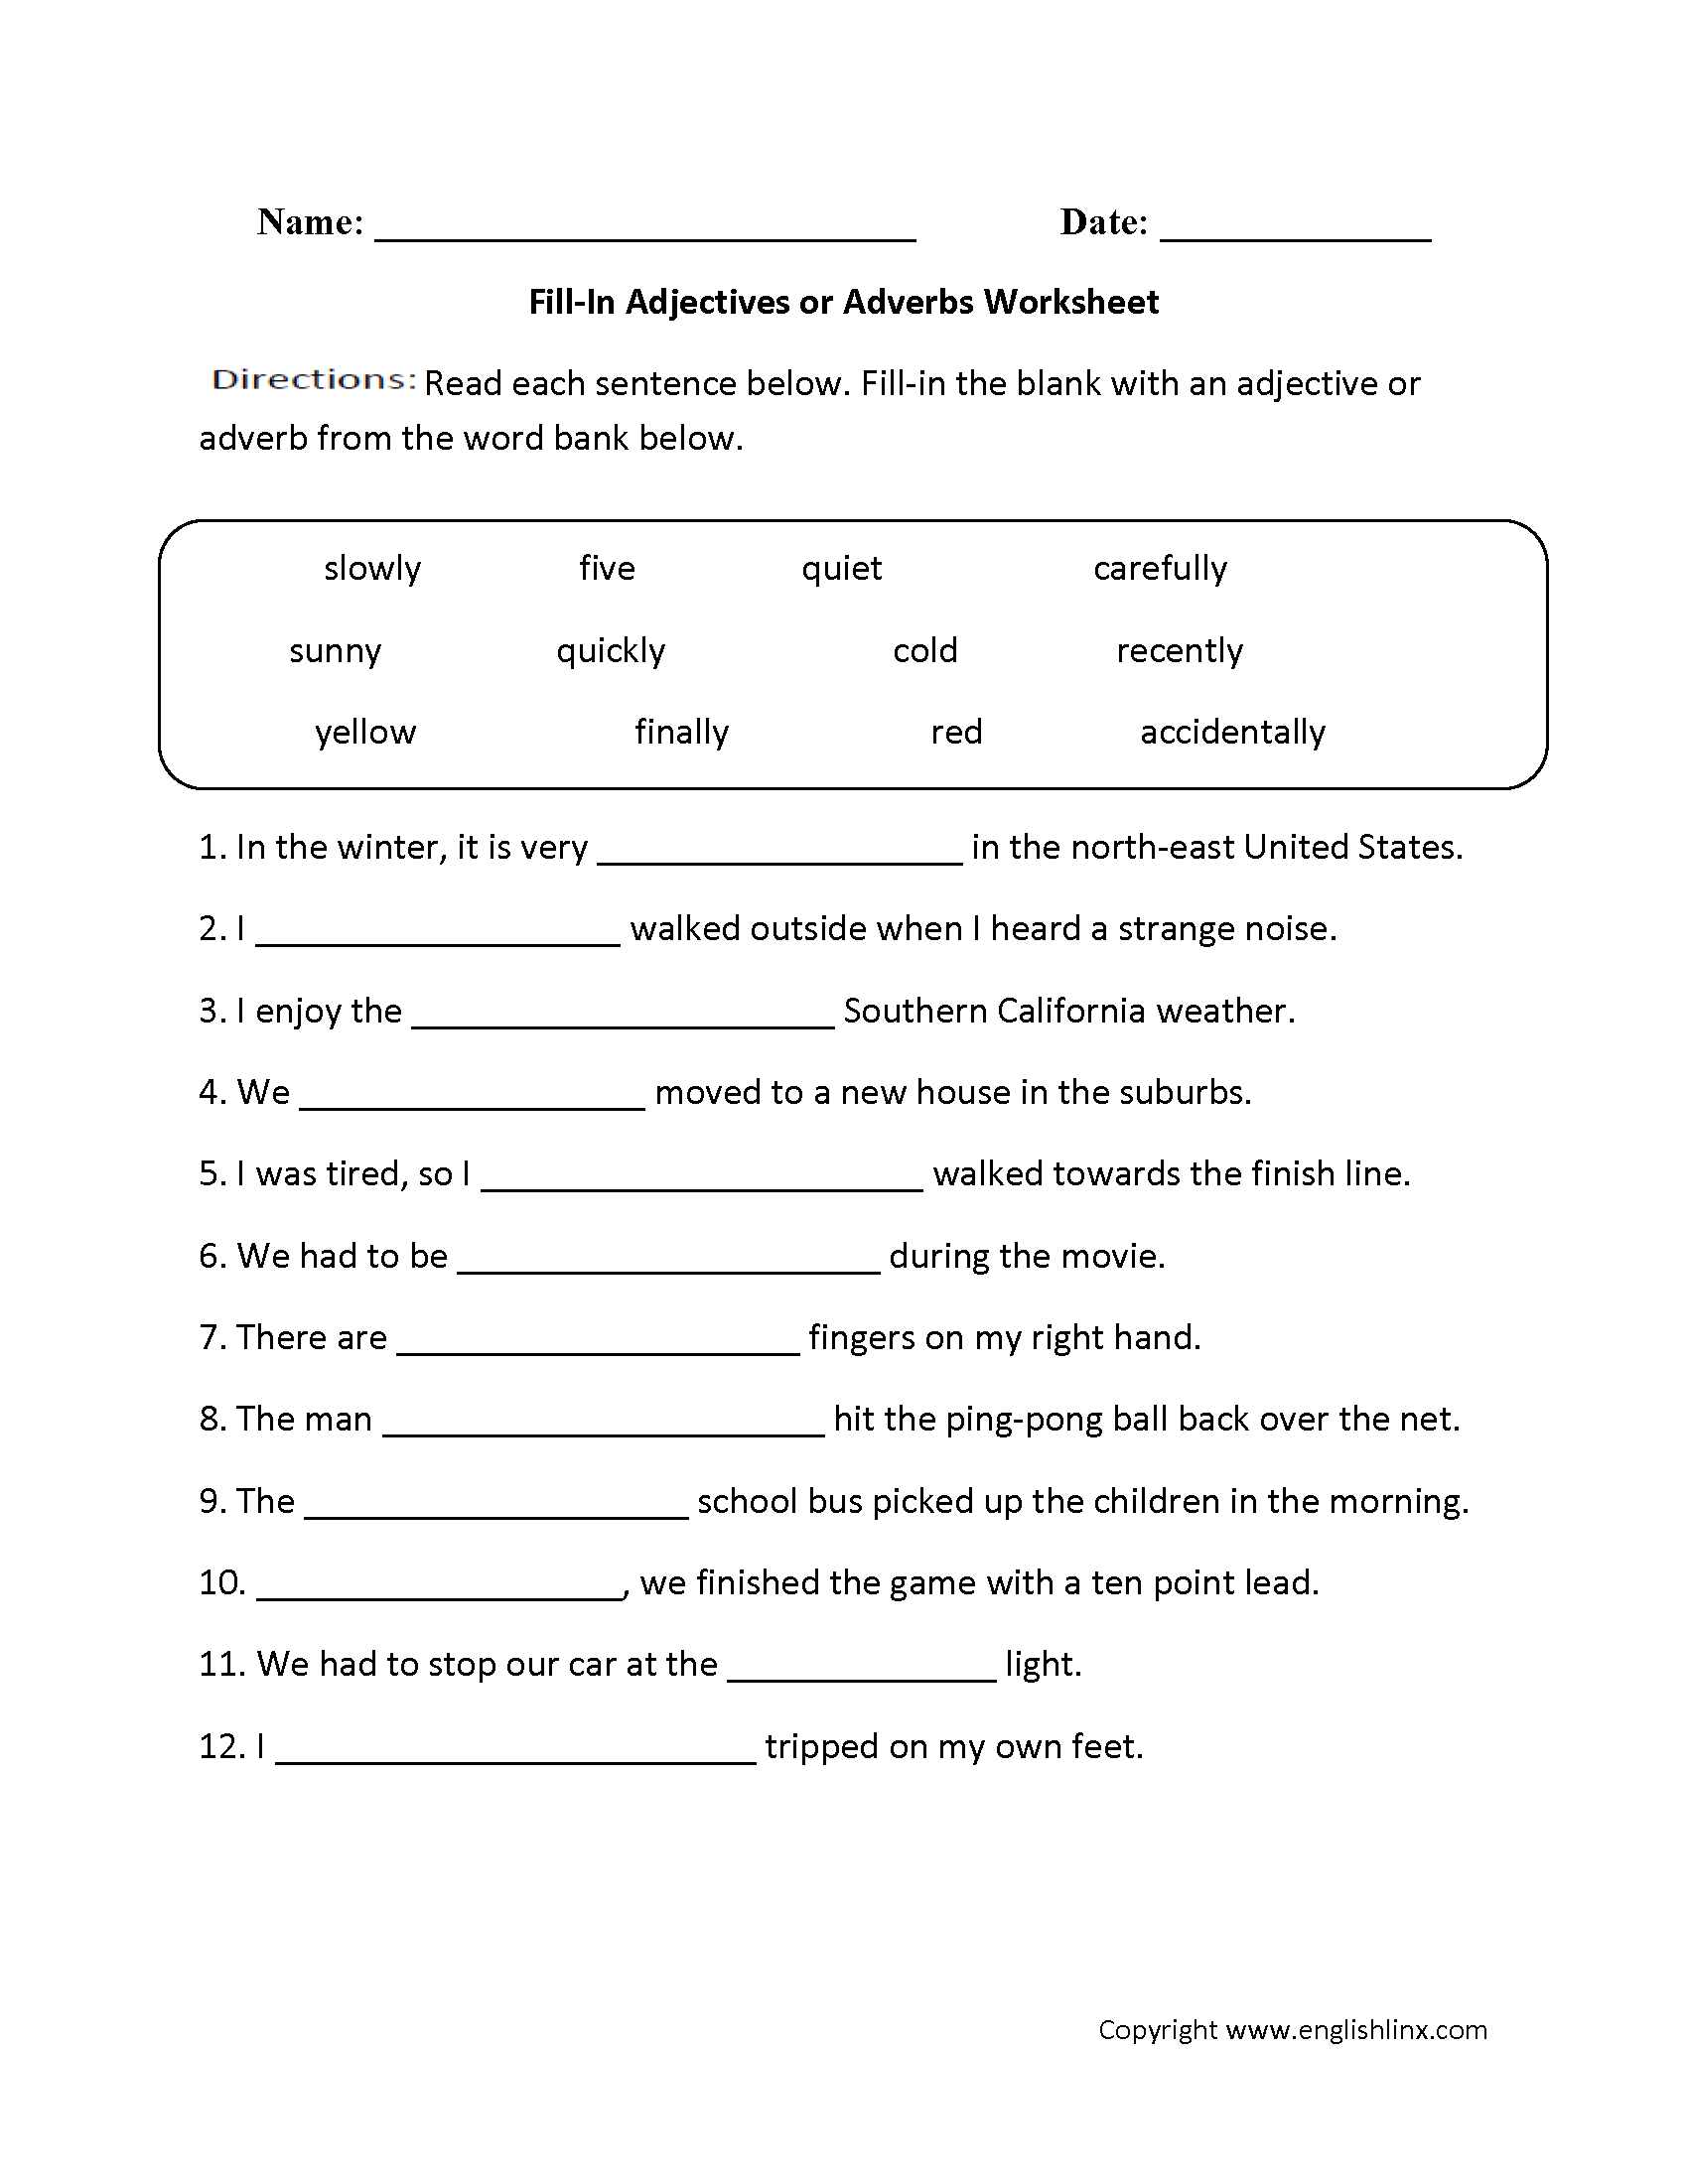 Adjectives Or Adverbs Worksheets